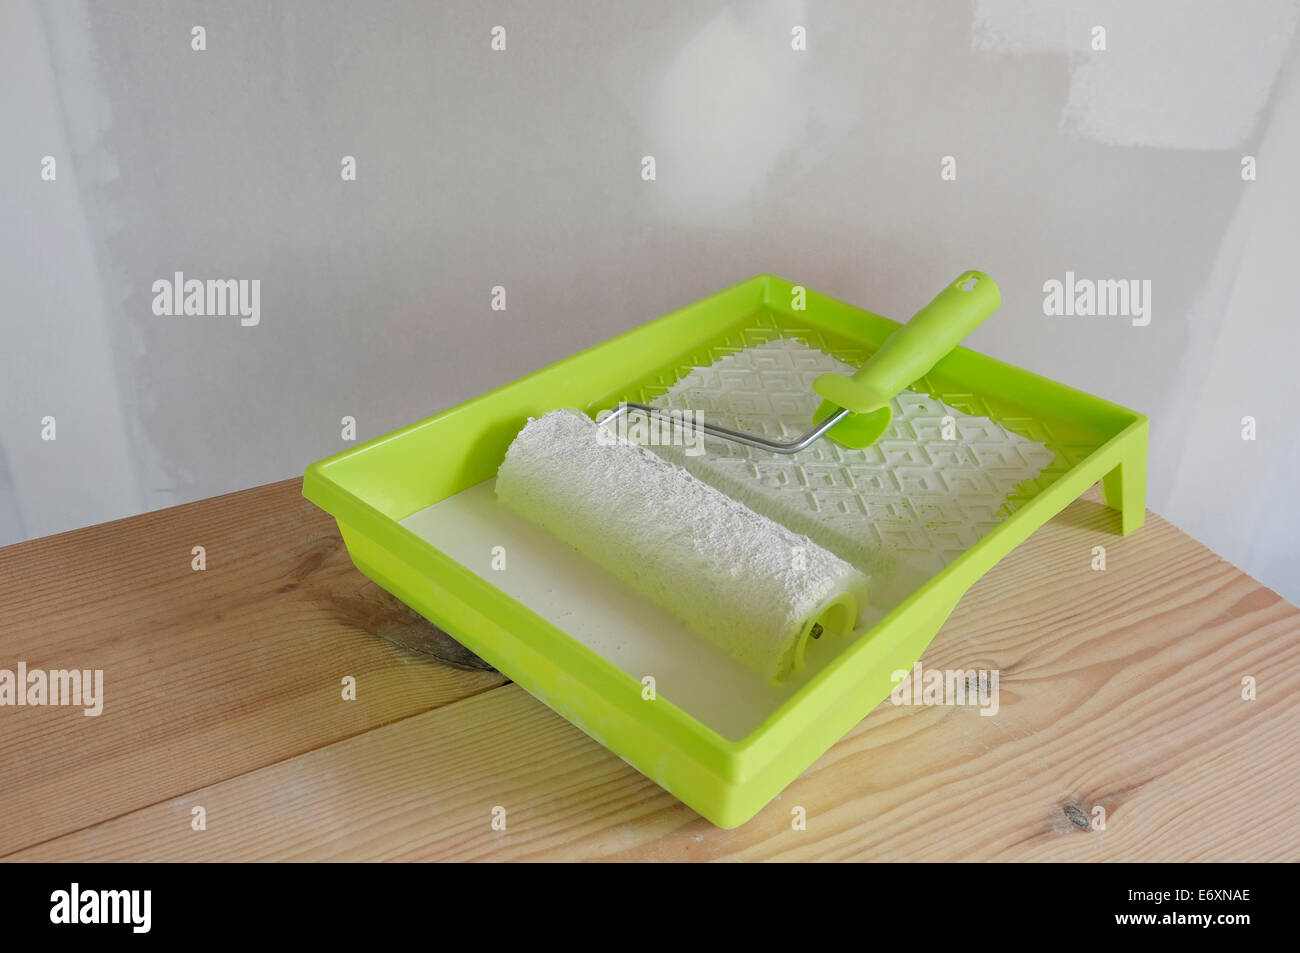 decorating roller and tray on table - Stock Image